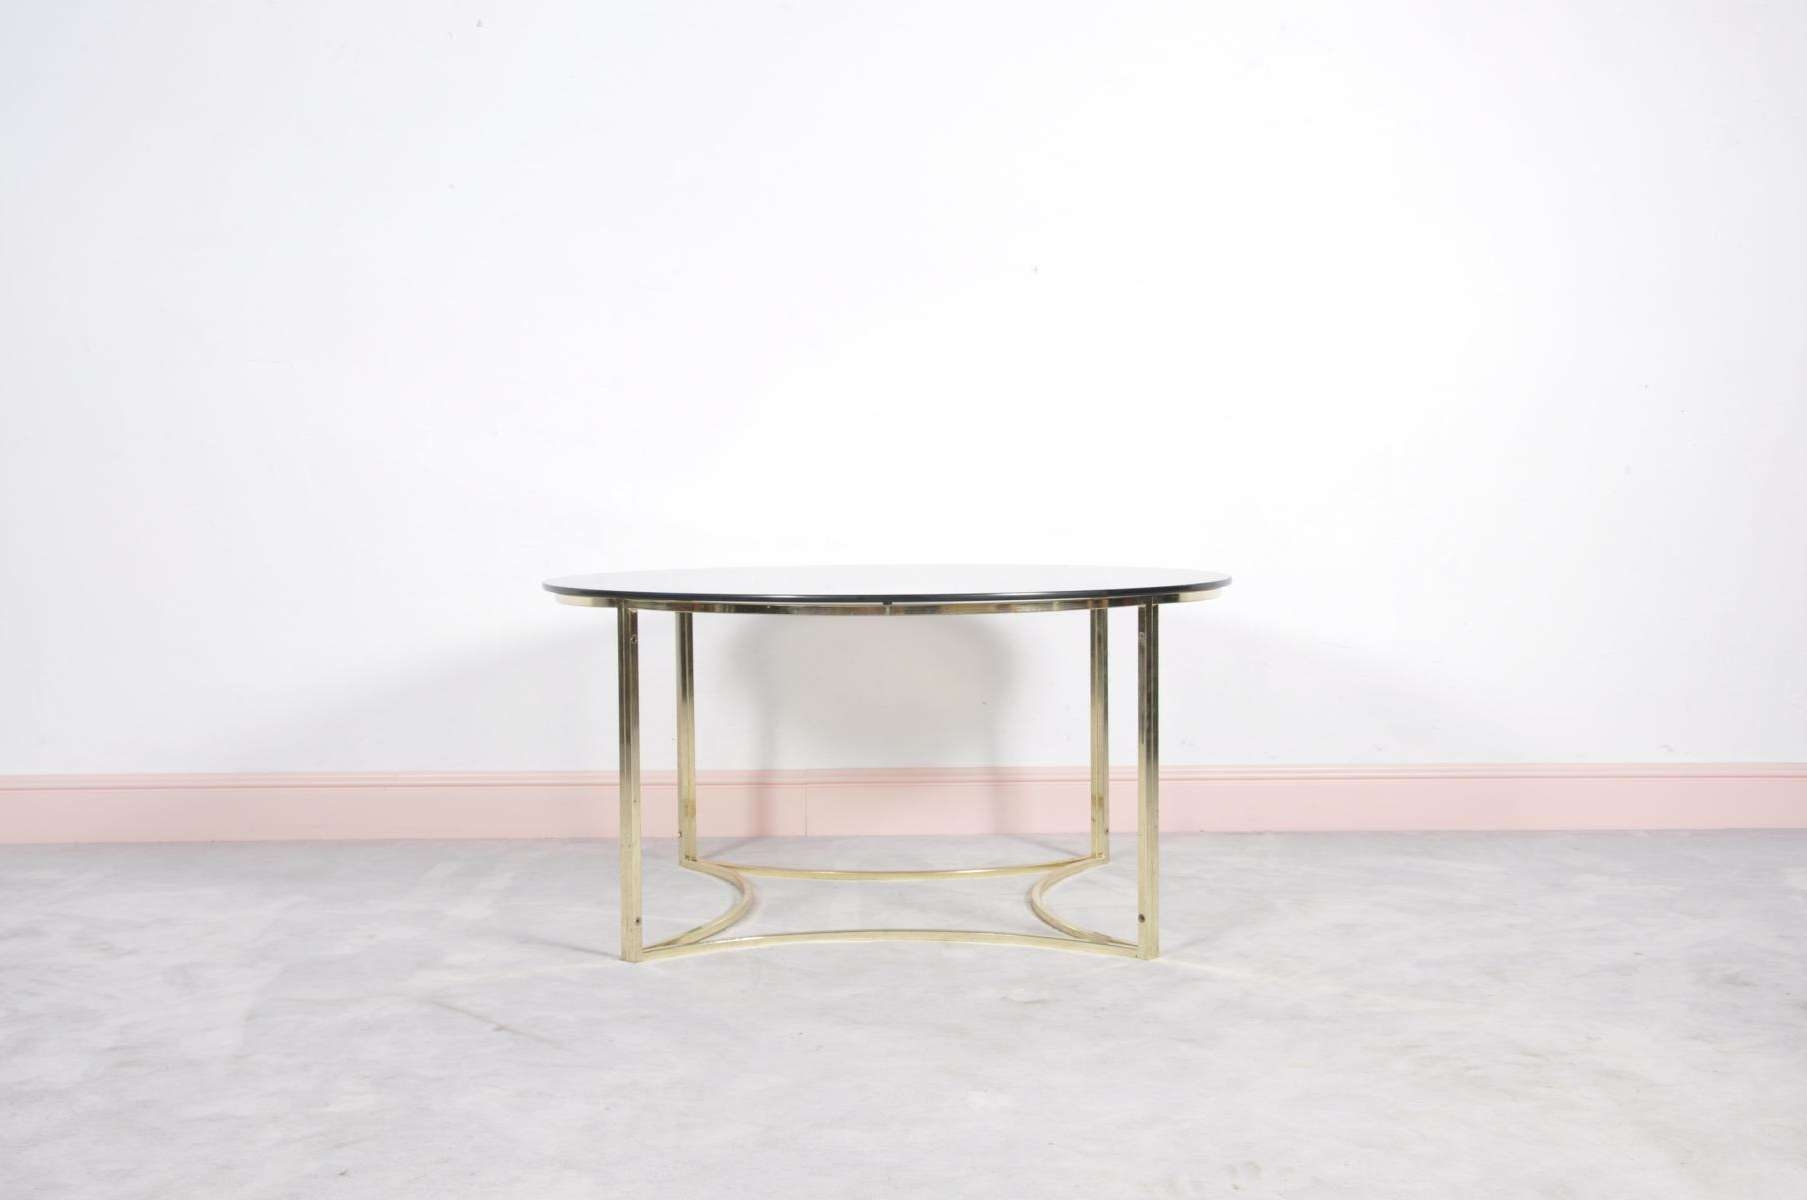 2017 Glass Coffee Tables Pertaining To Mid Century Brass & Glass Coffee Table For Sale At Pamono (View 1 of 20)